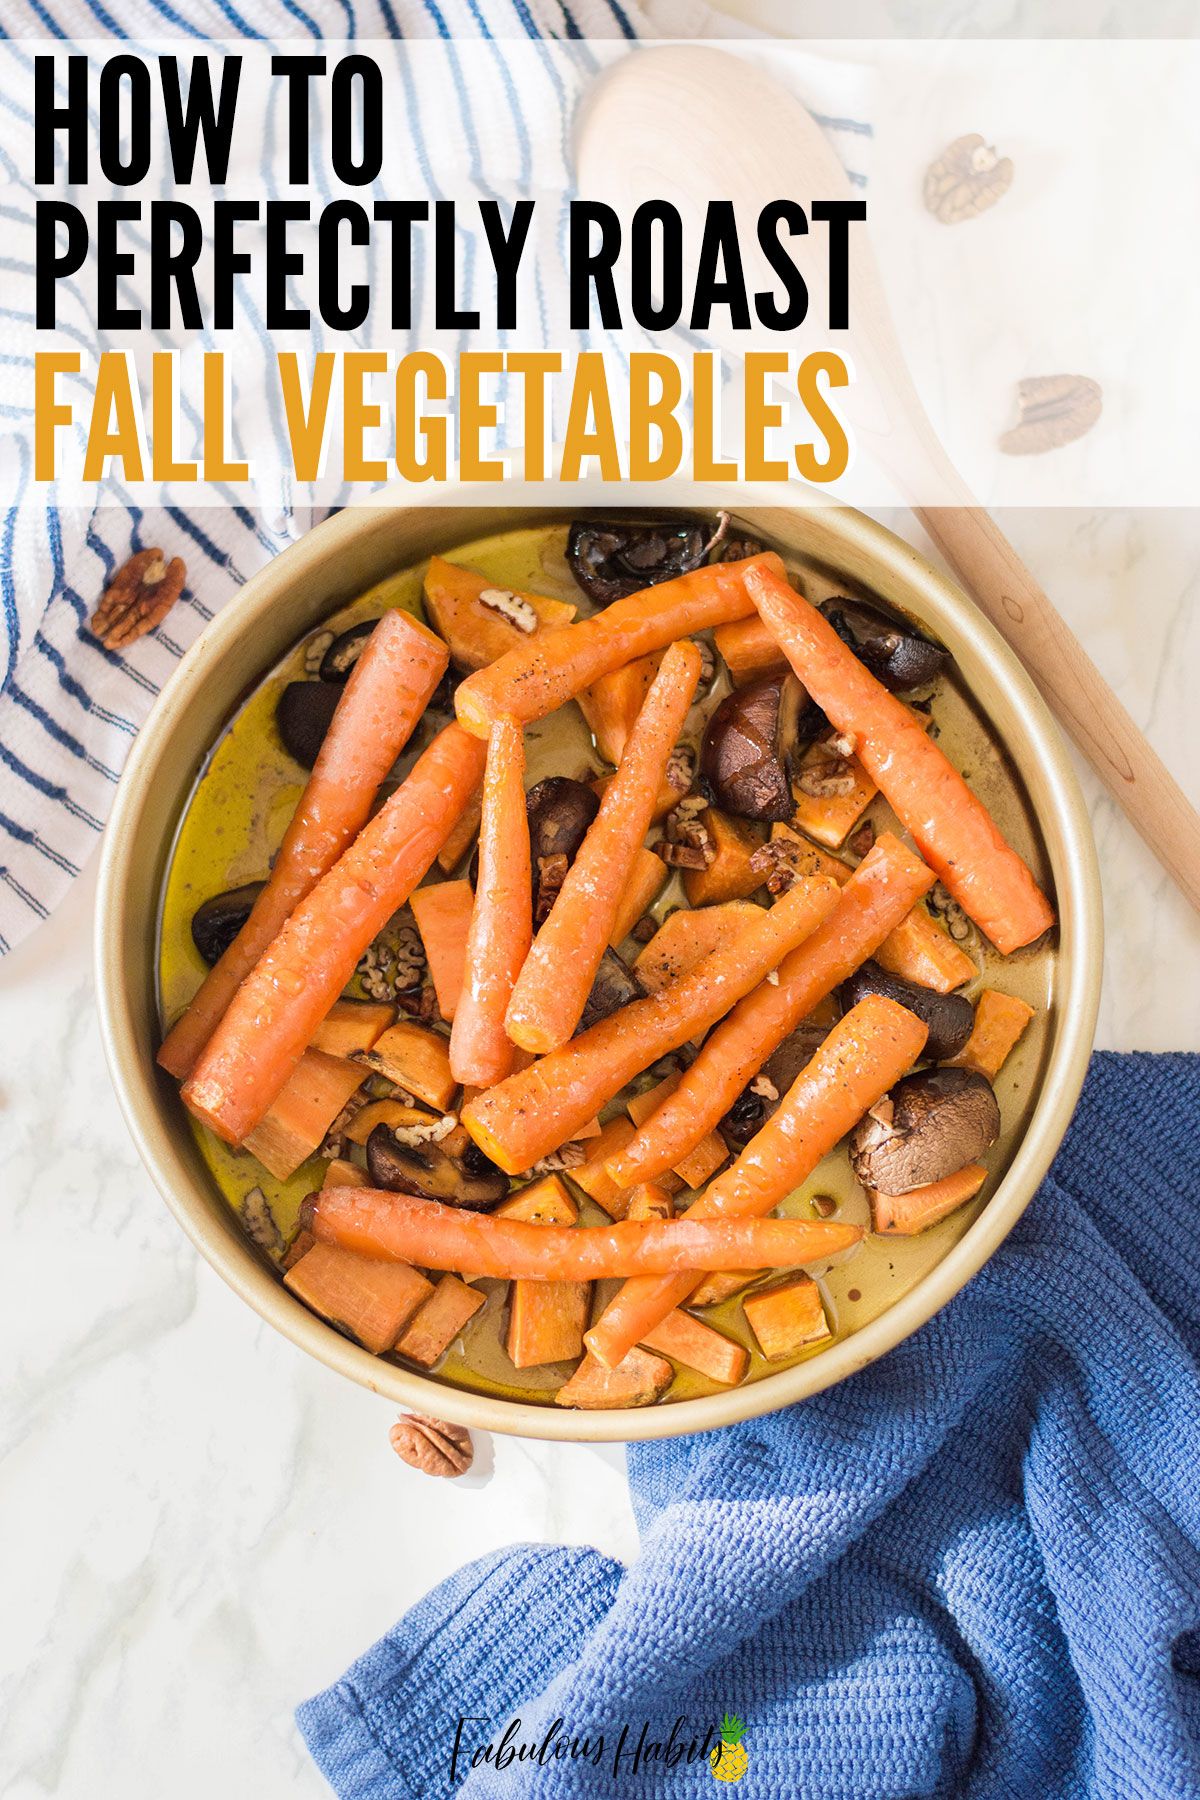 It's fall so that means delicious vegetables are in season. Here's a quick and easy recipe on how to roast your very own fall vegetables #raostedfallvegetables